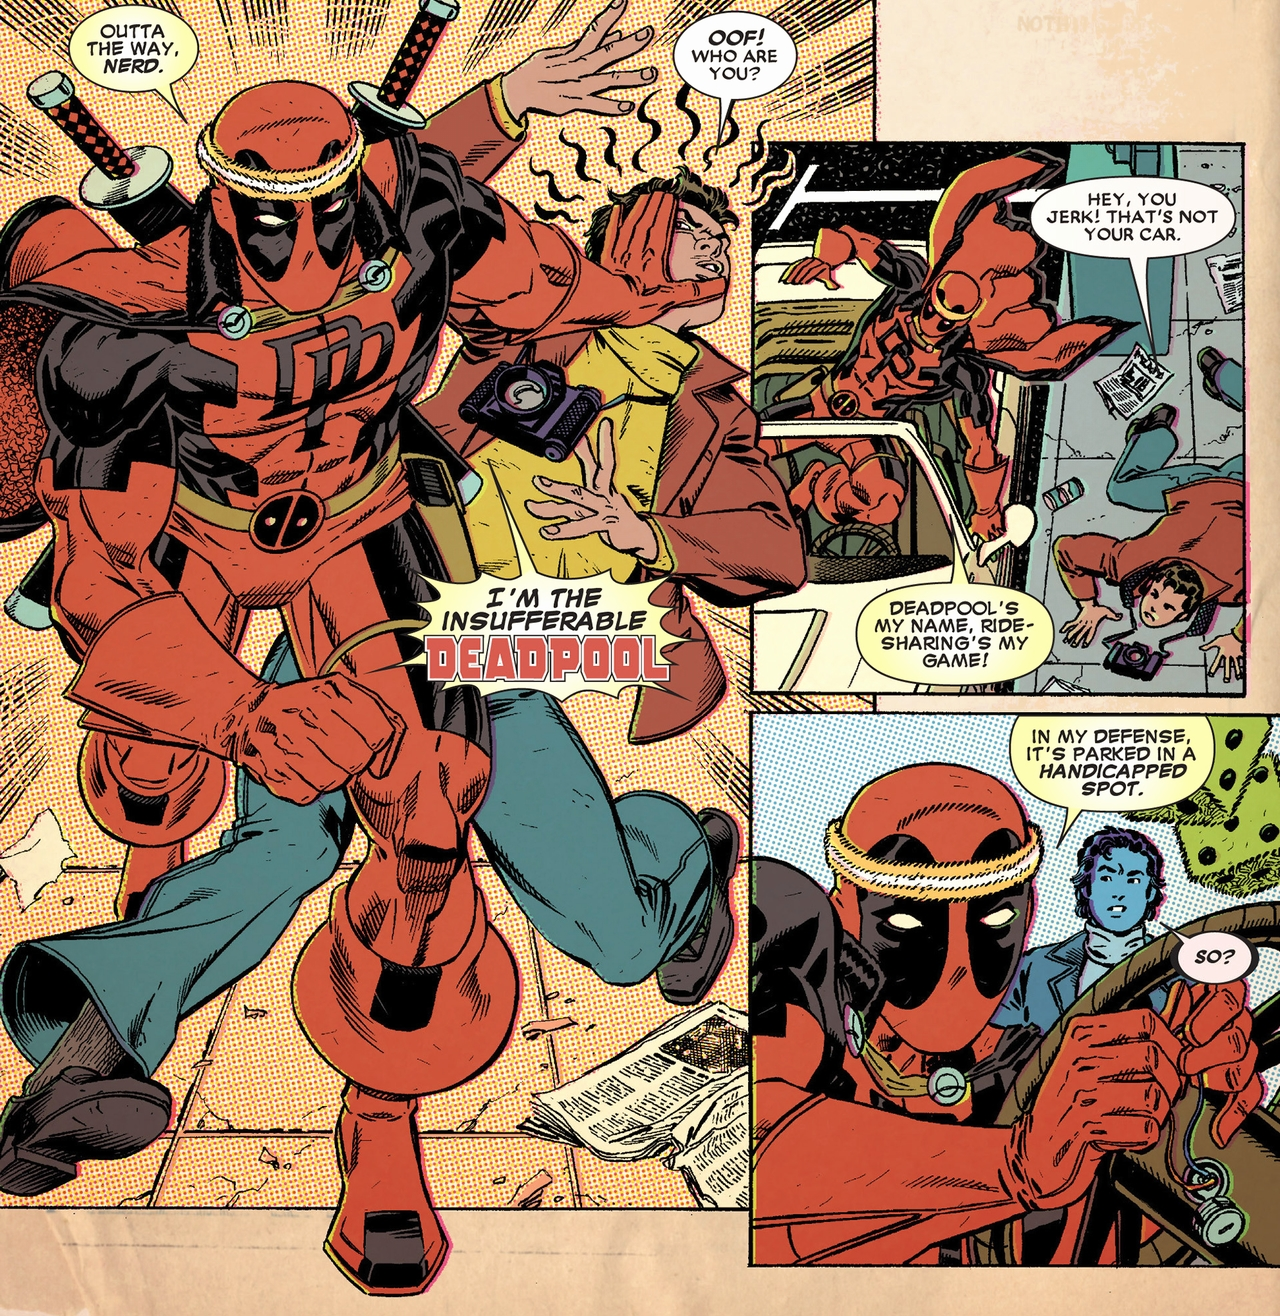 Deadpool Scott Koblish